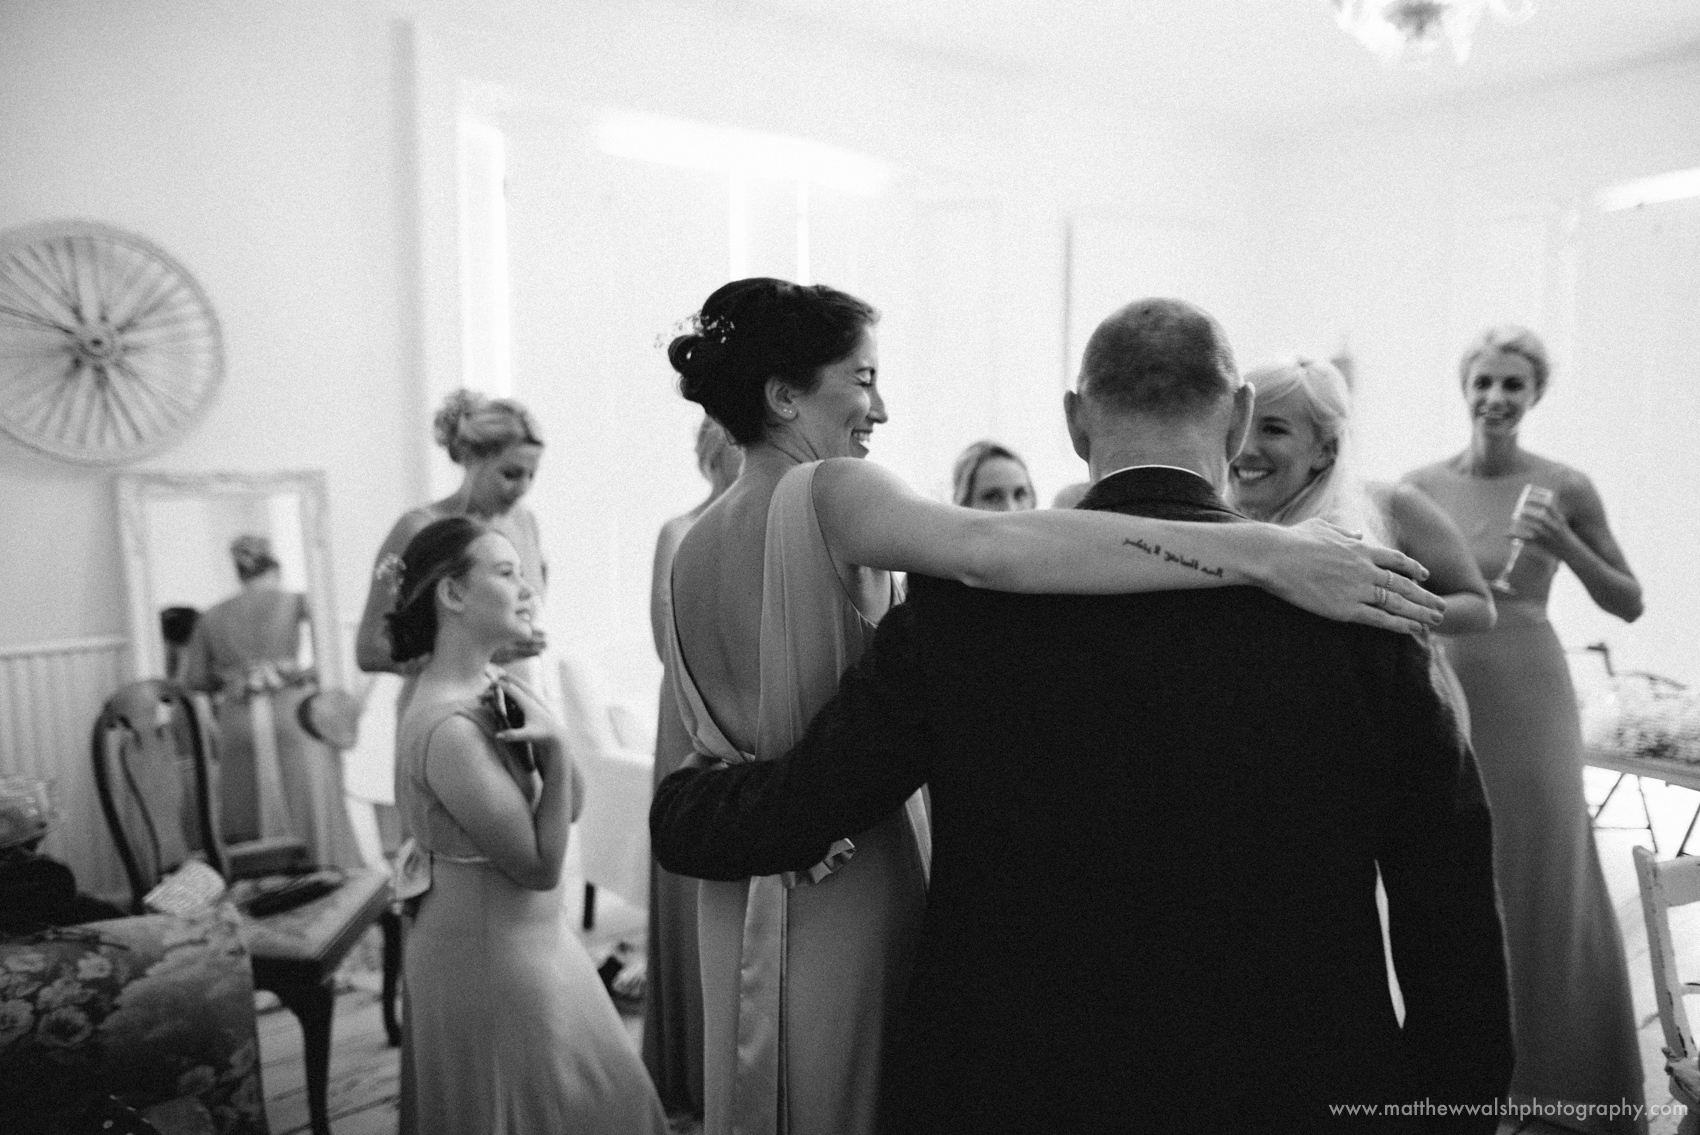 Father of the bride meets the bridesmaids